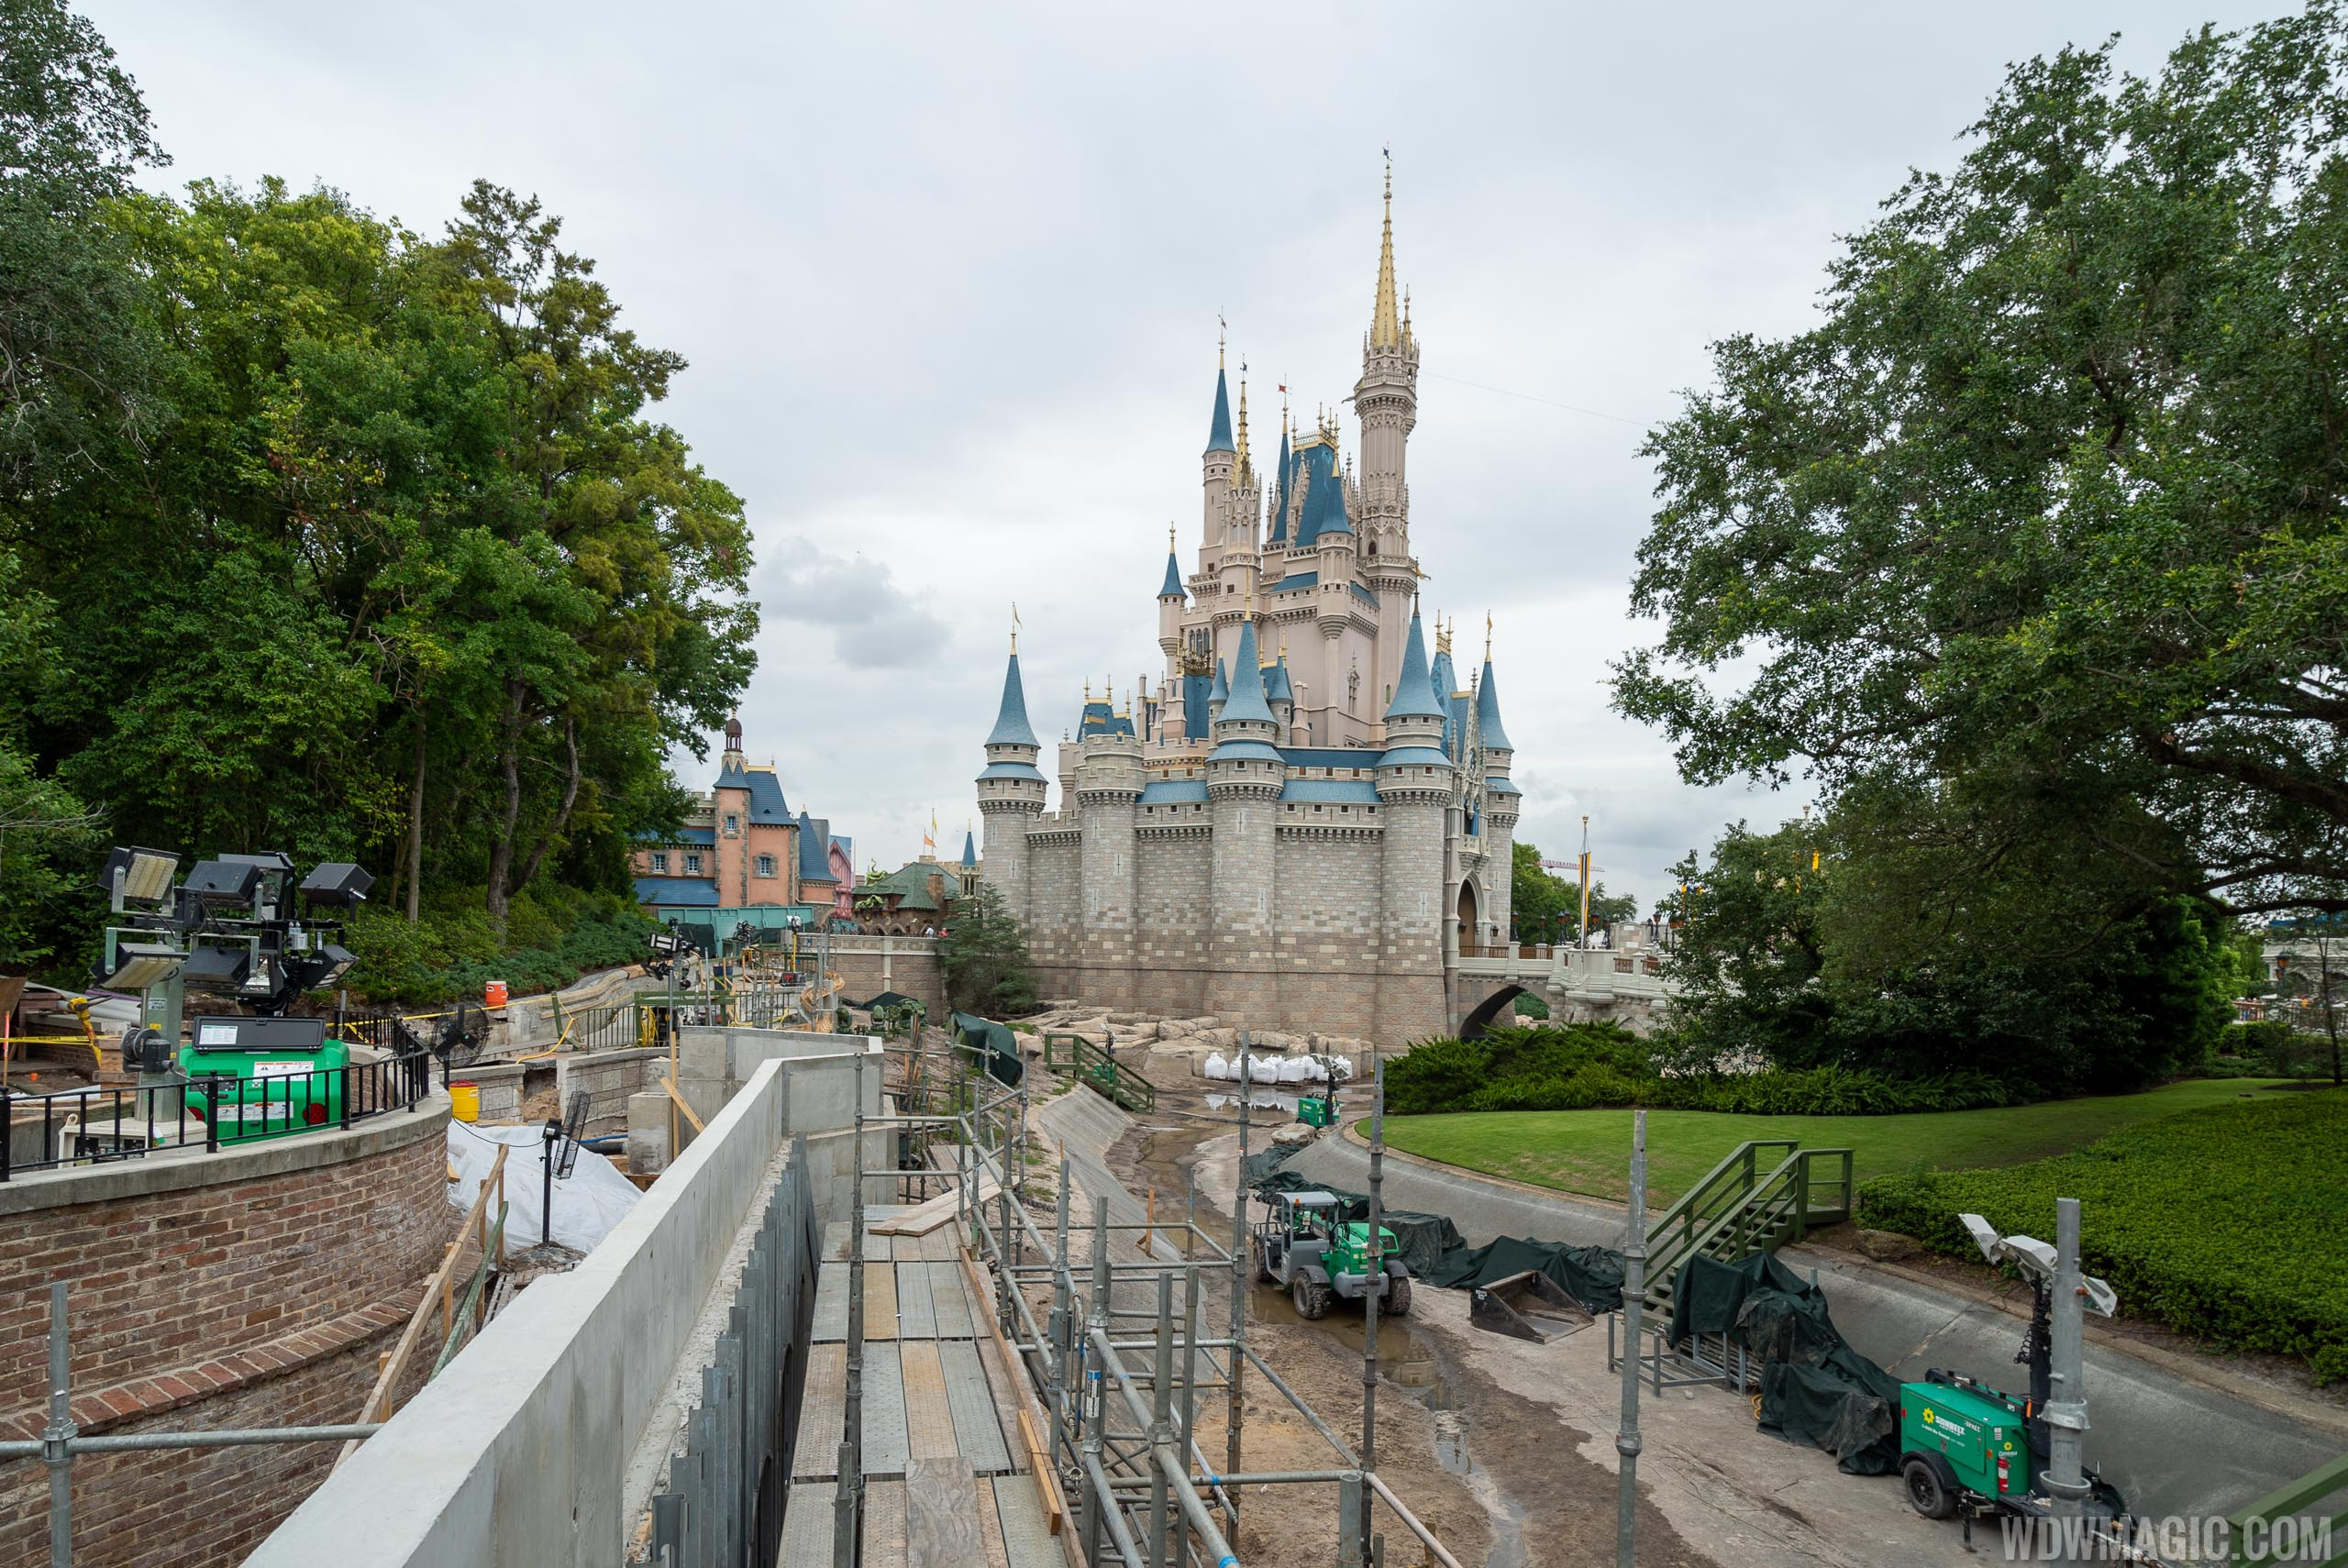 Liberty Square to Fantasyland walkway expansion construction - June 2019